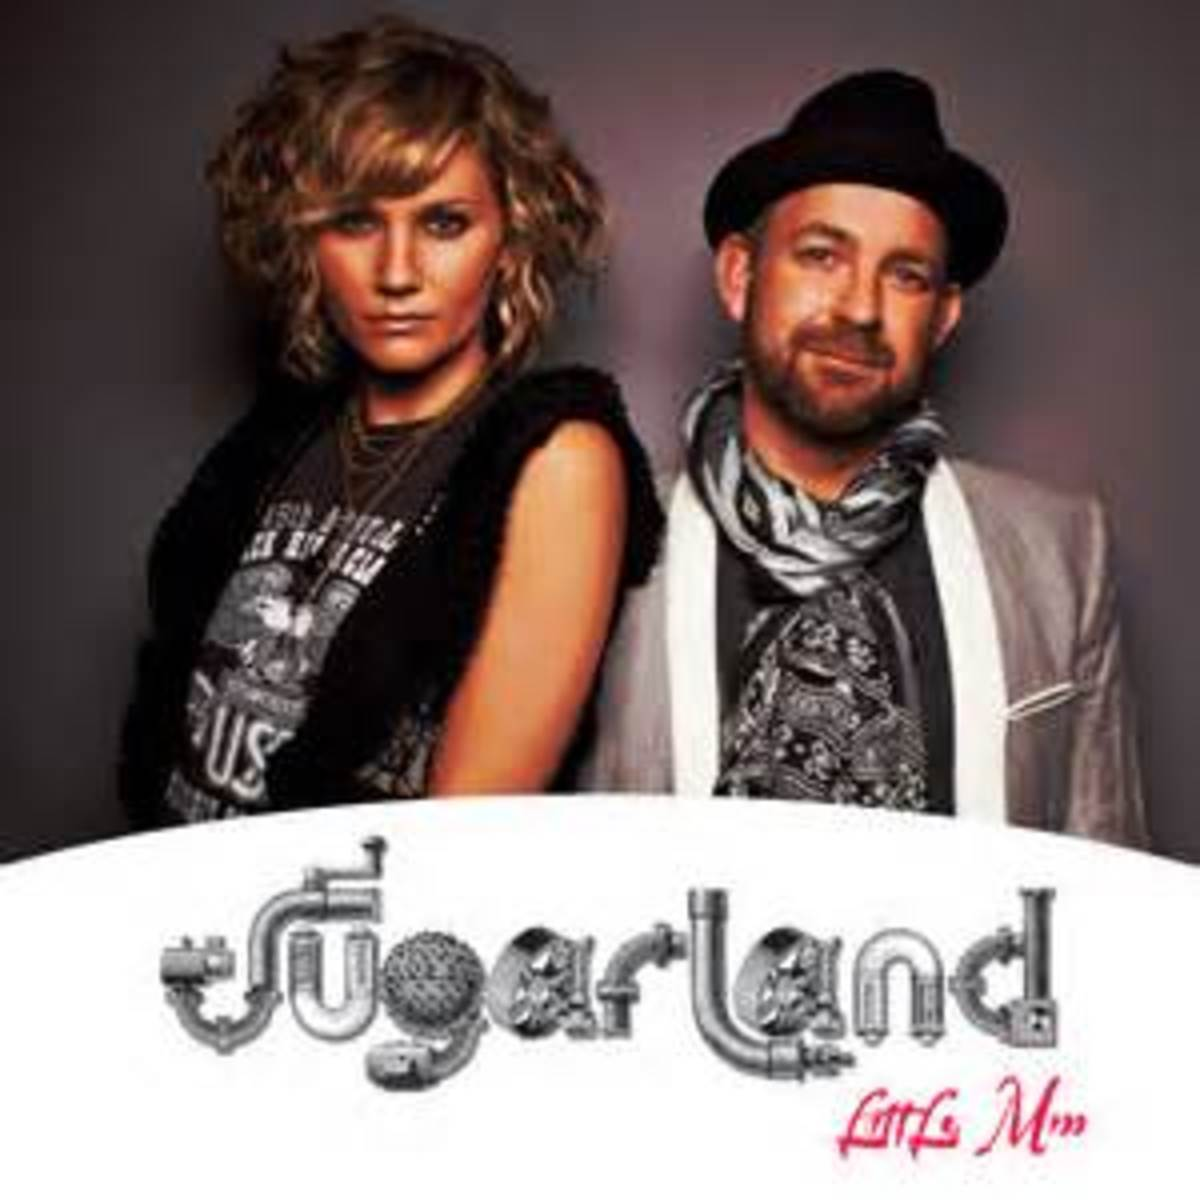 """Click on the link to listen to """"Little Miss"""" by Sugarland"""